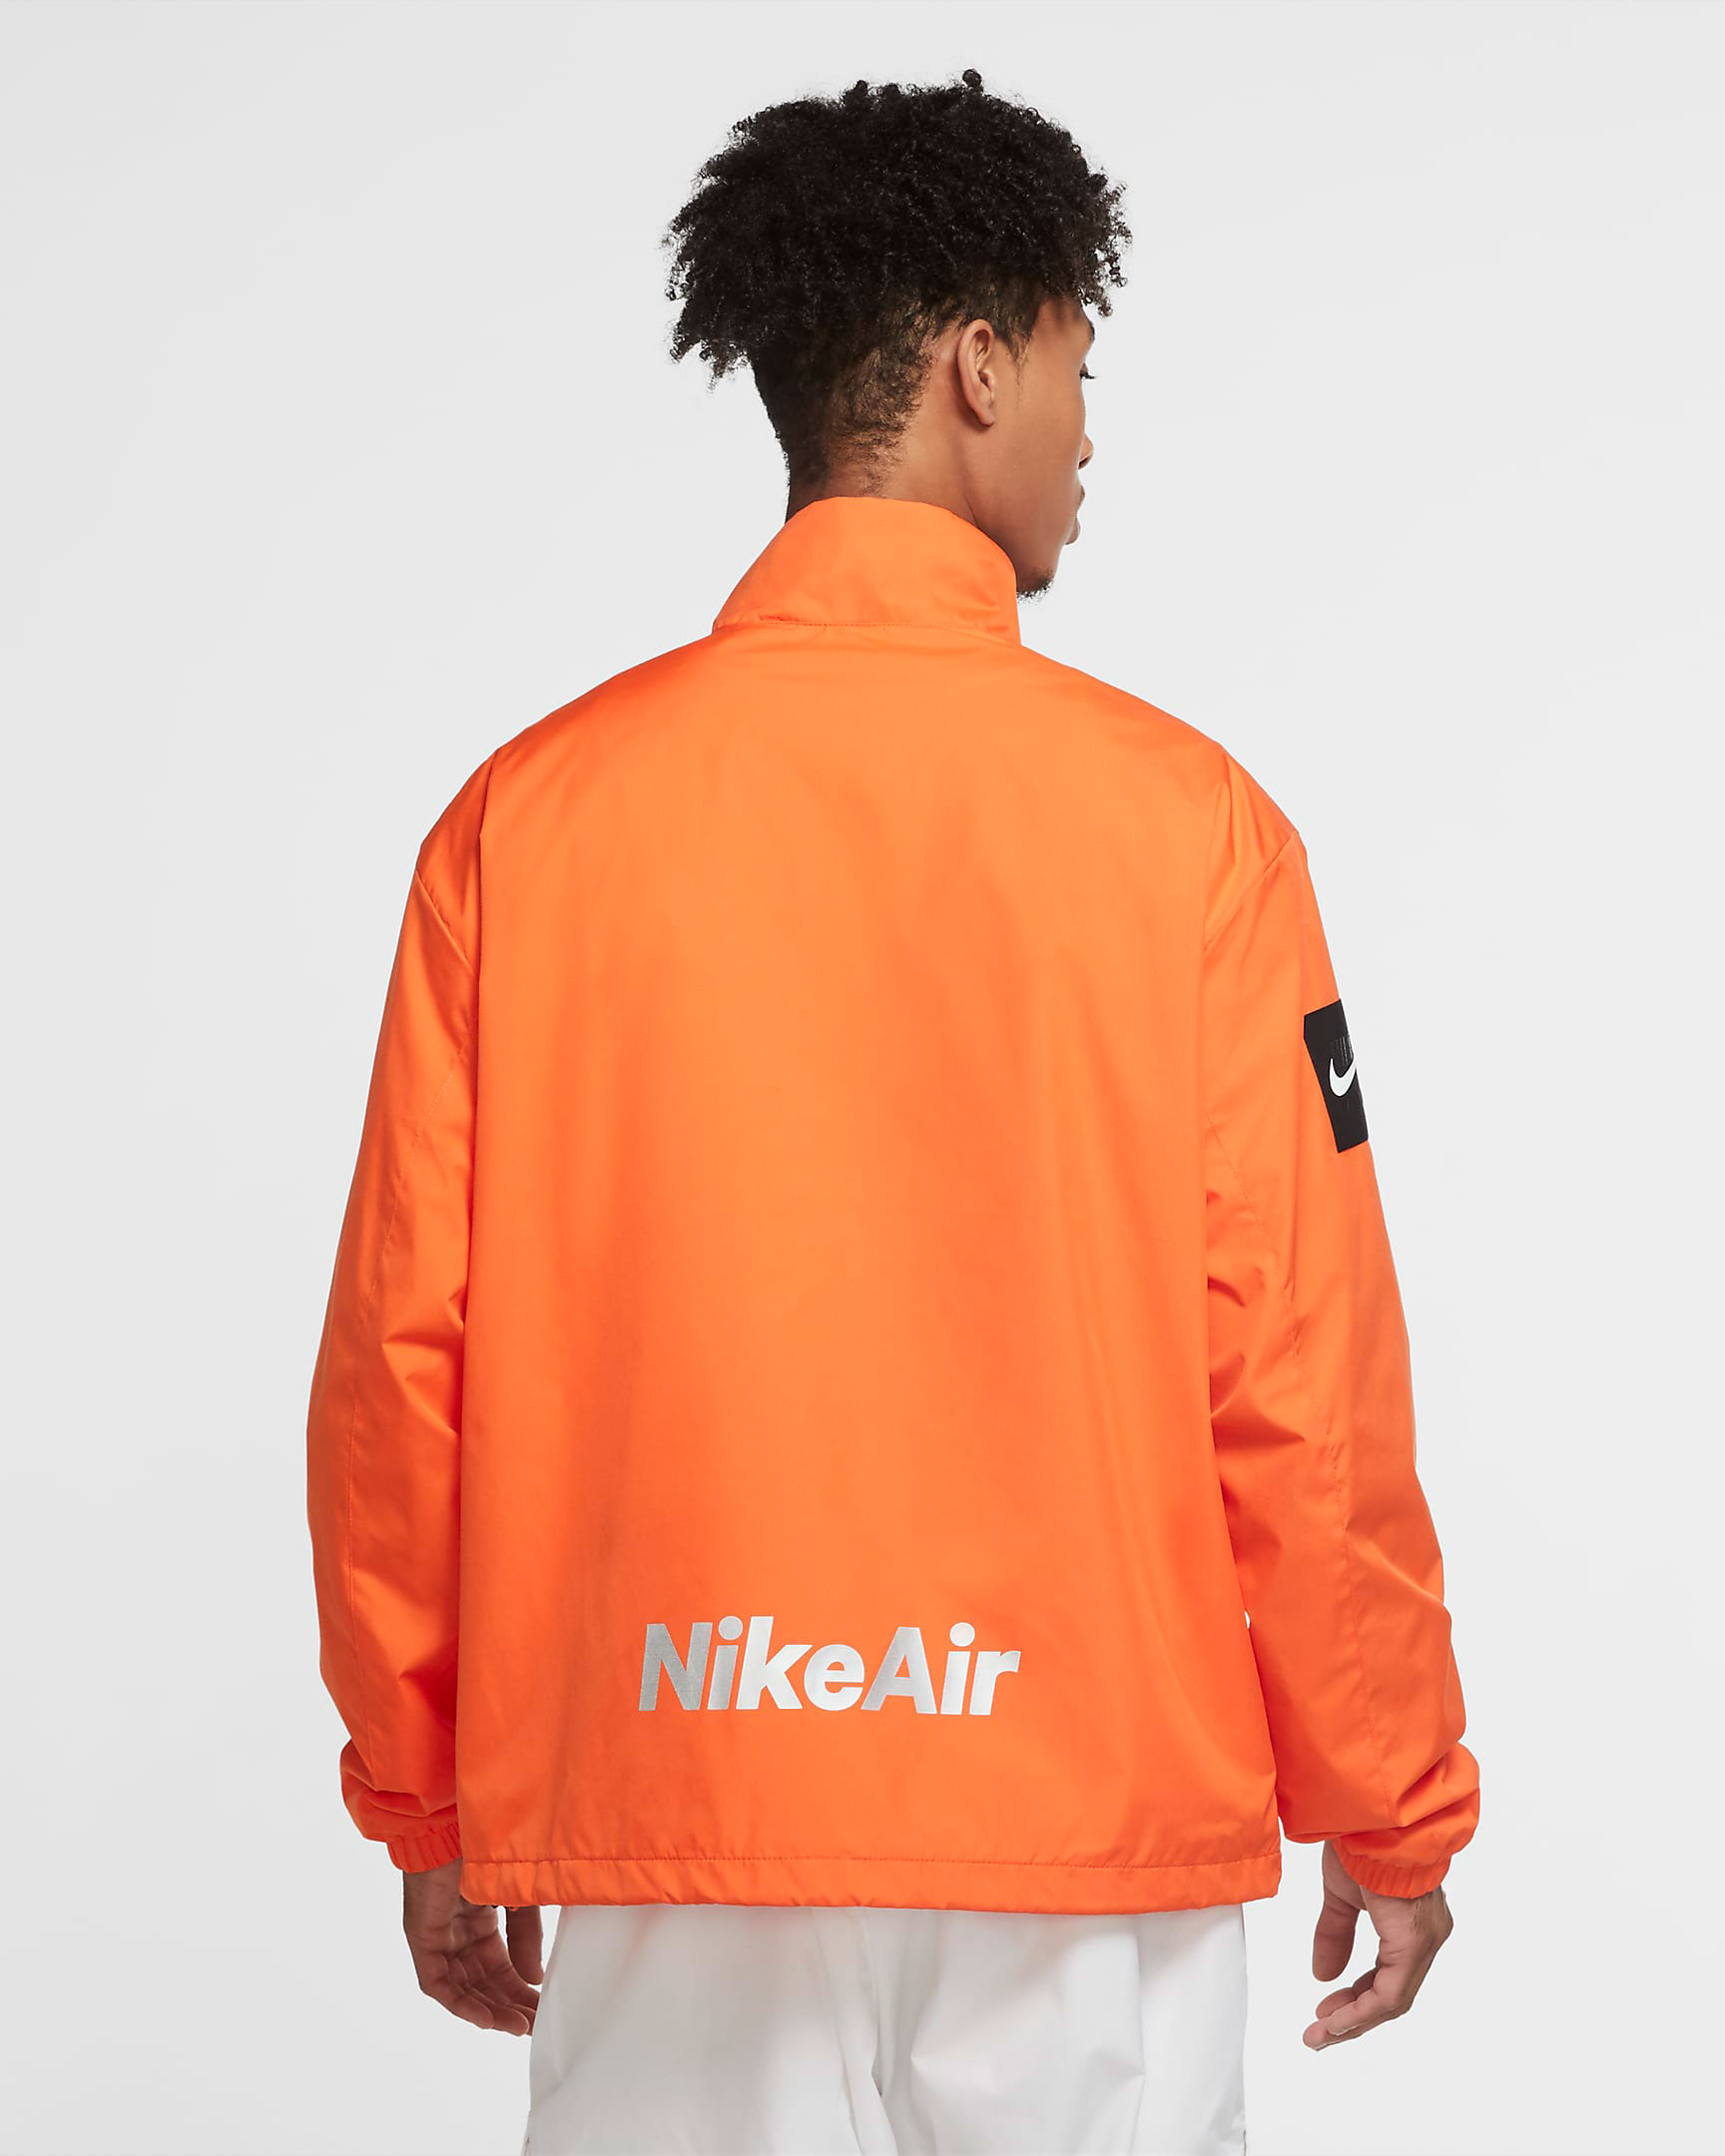 nike-air-orange-jacket-2